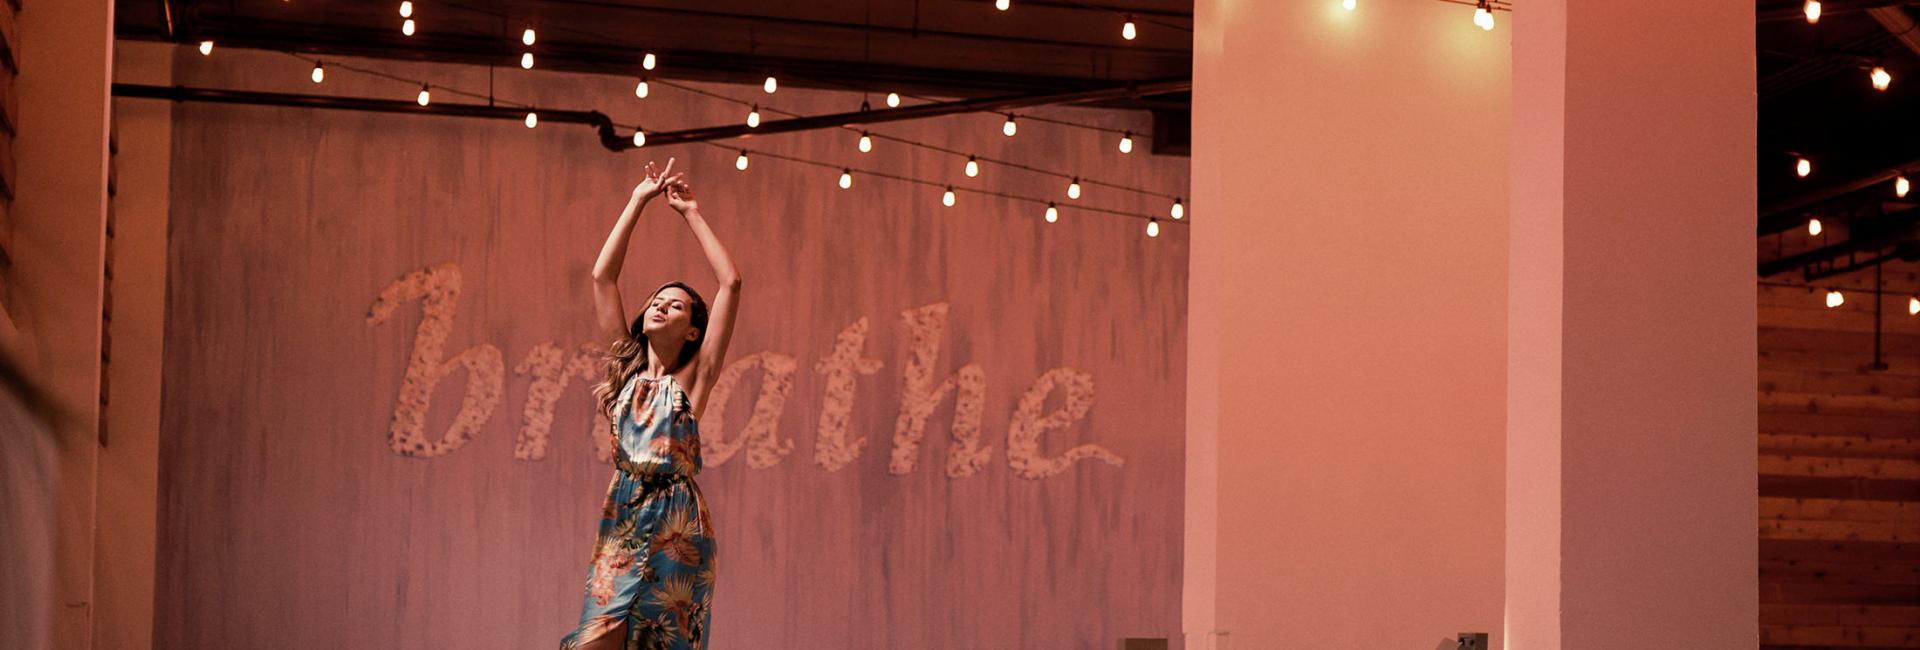 A woman dancing in a room decorated with twinkle lights